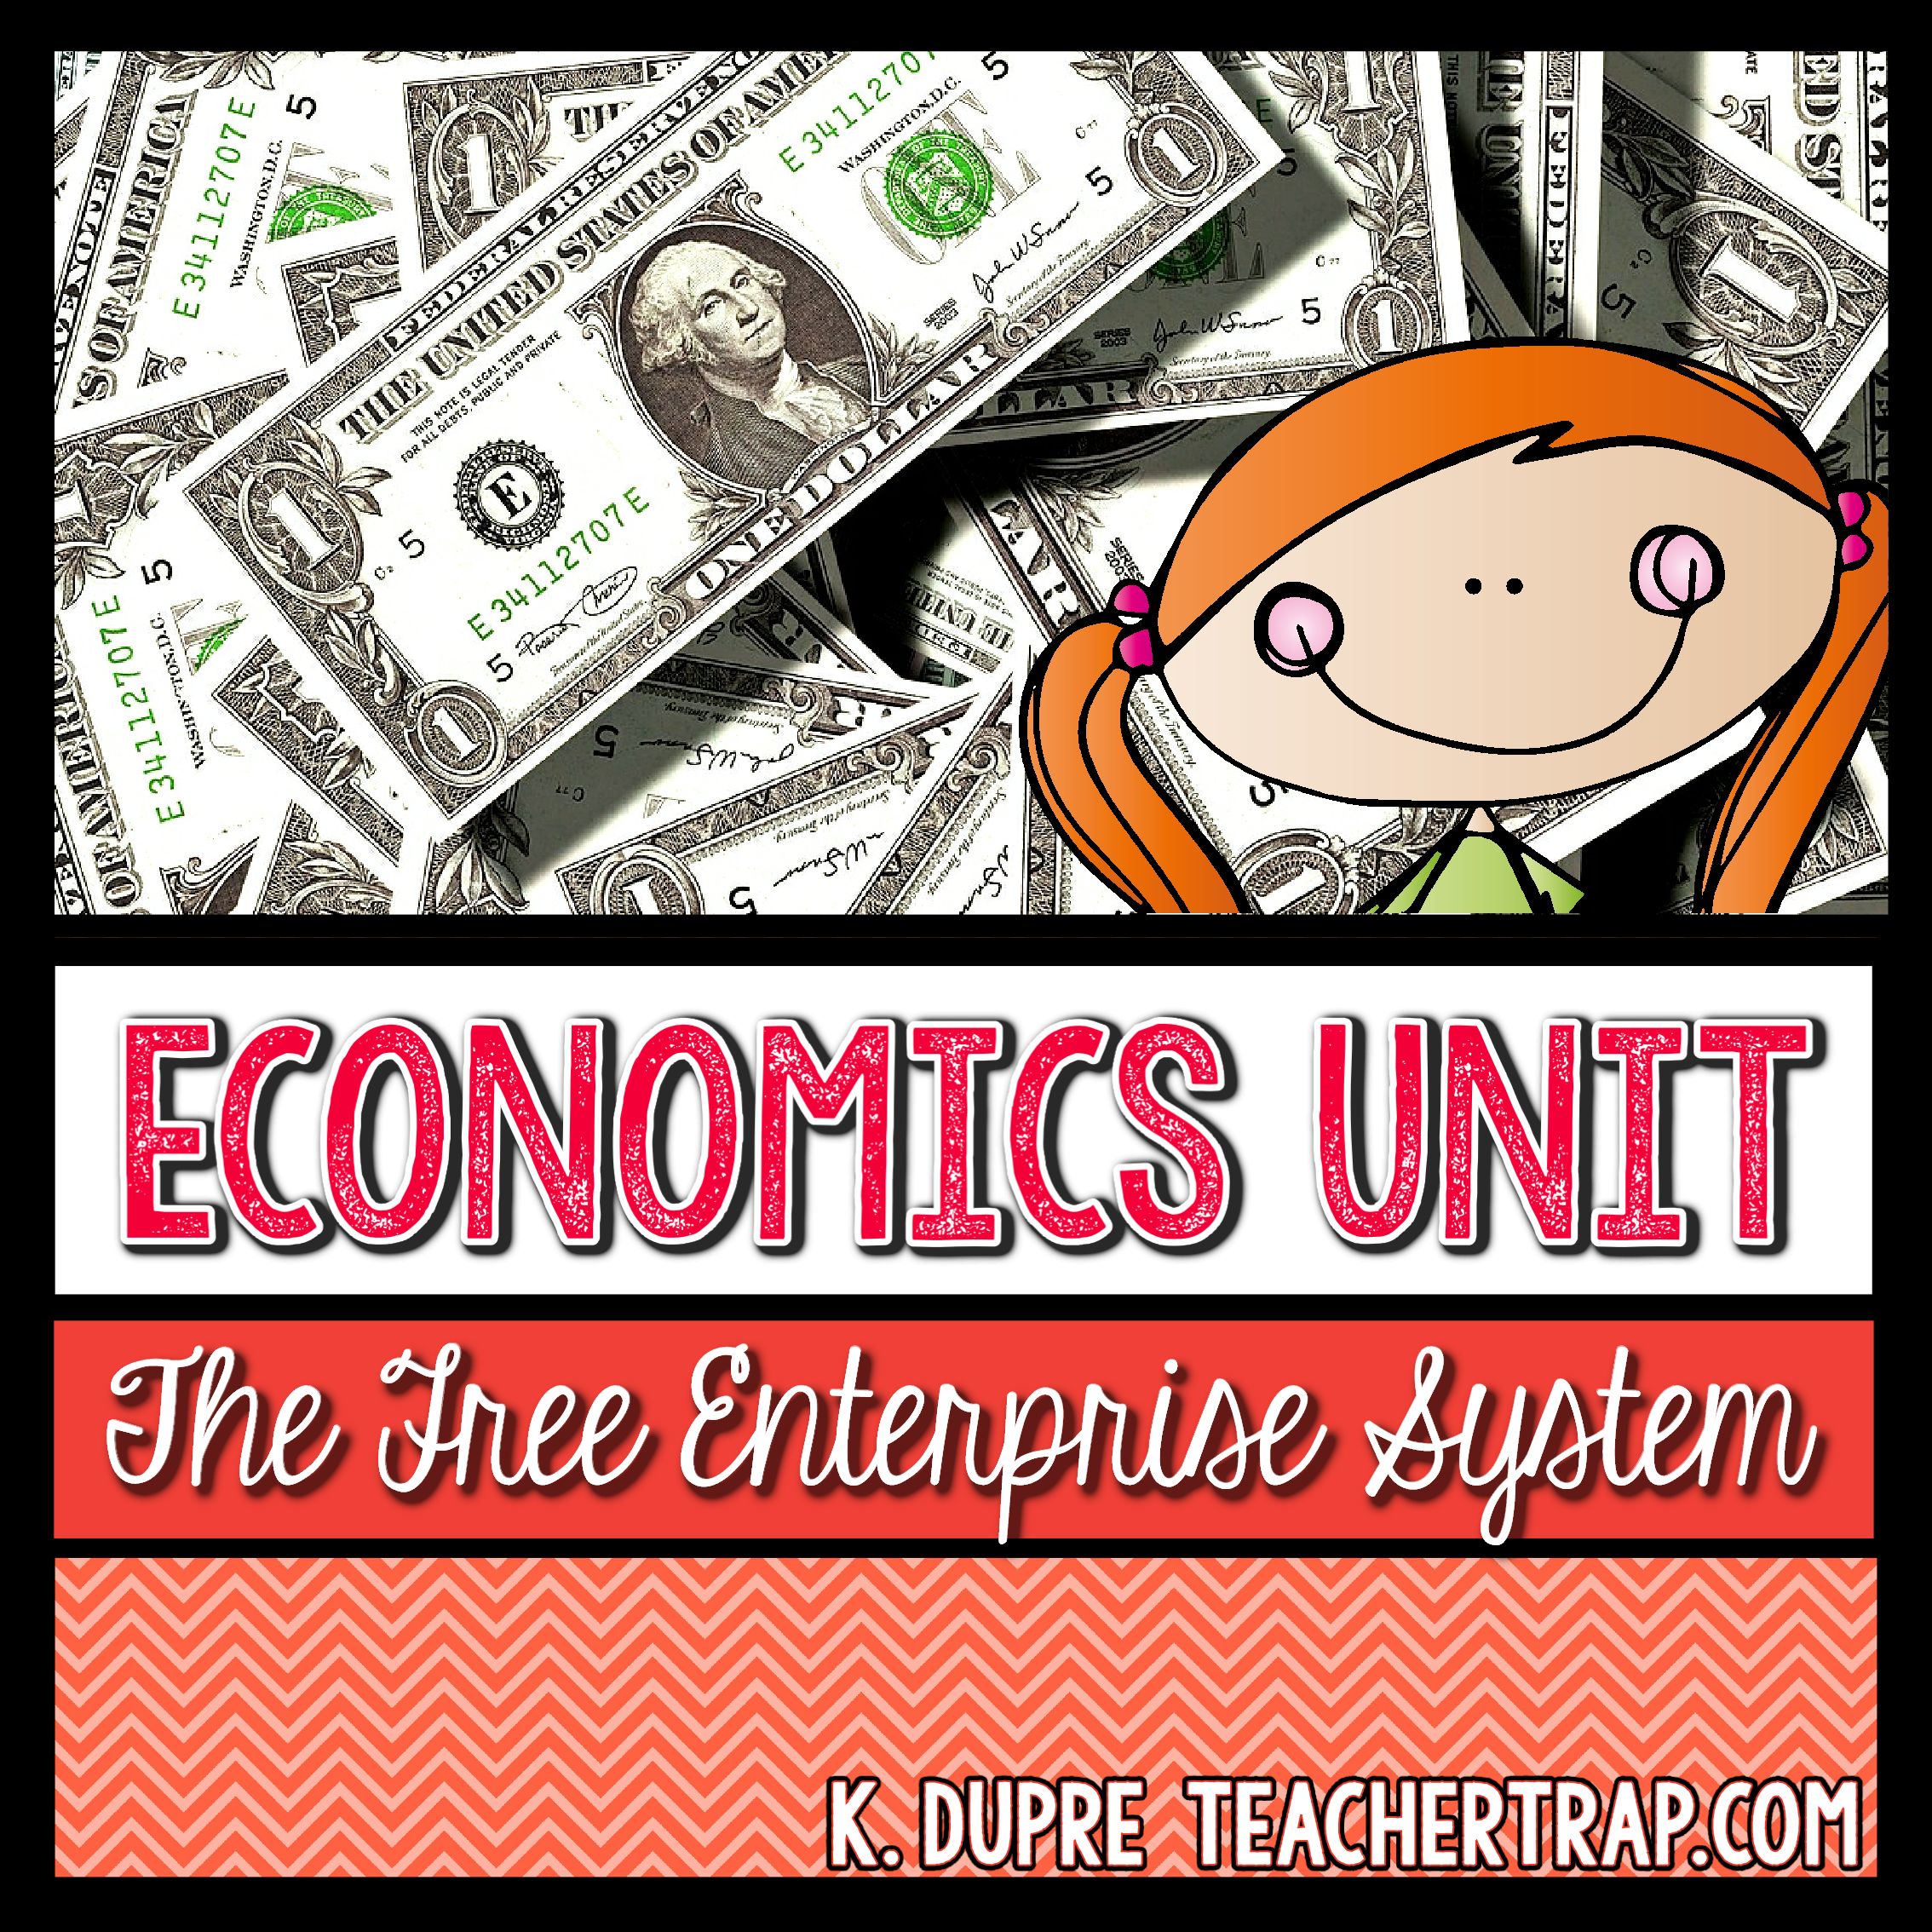 A Comprehensive Economics Unit With Engaging Activities